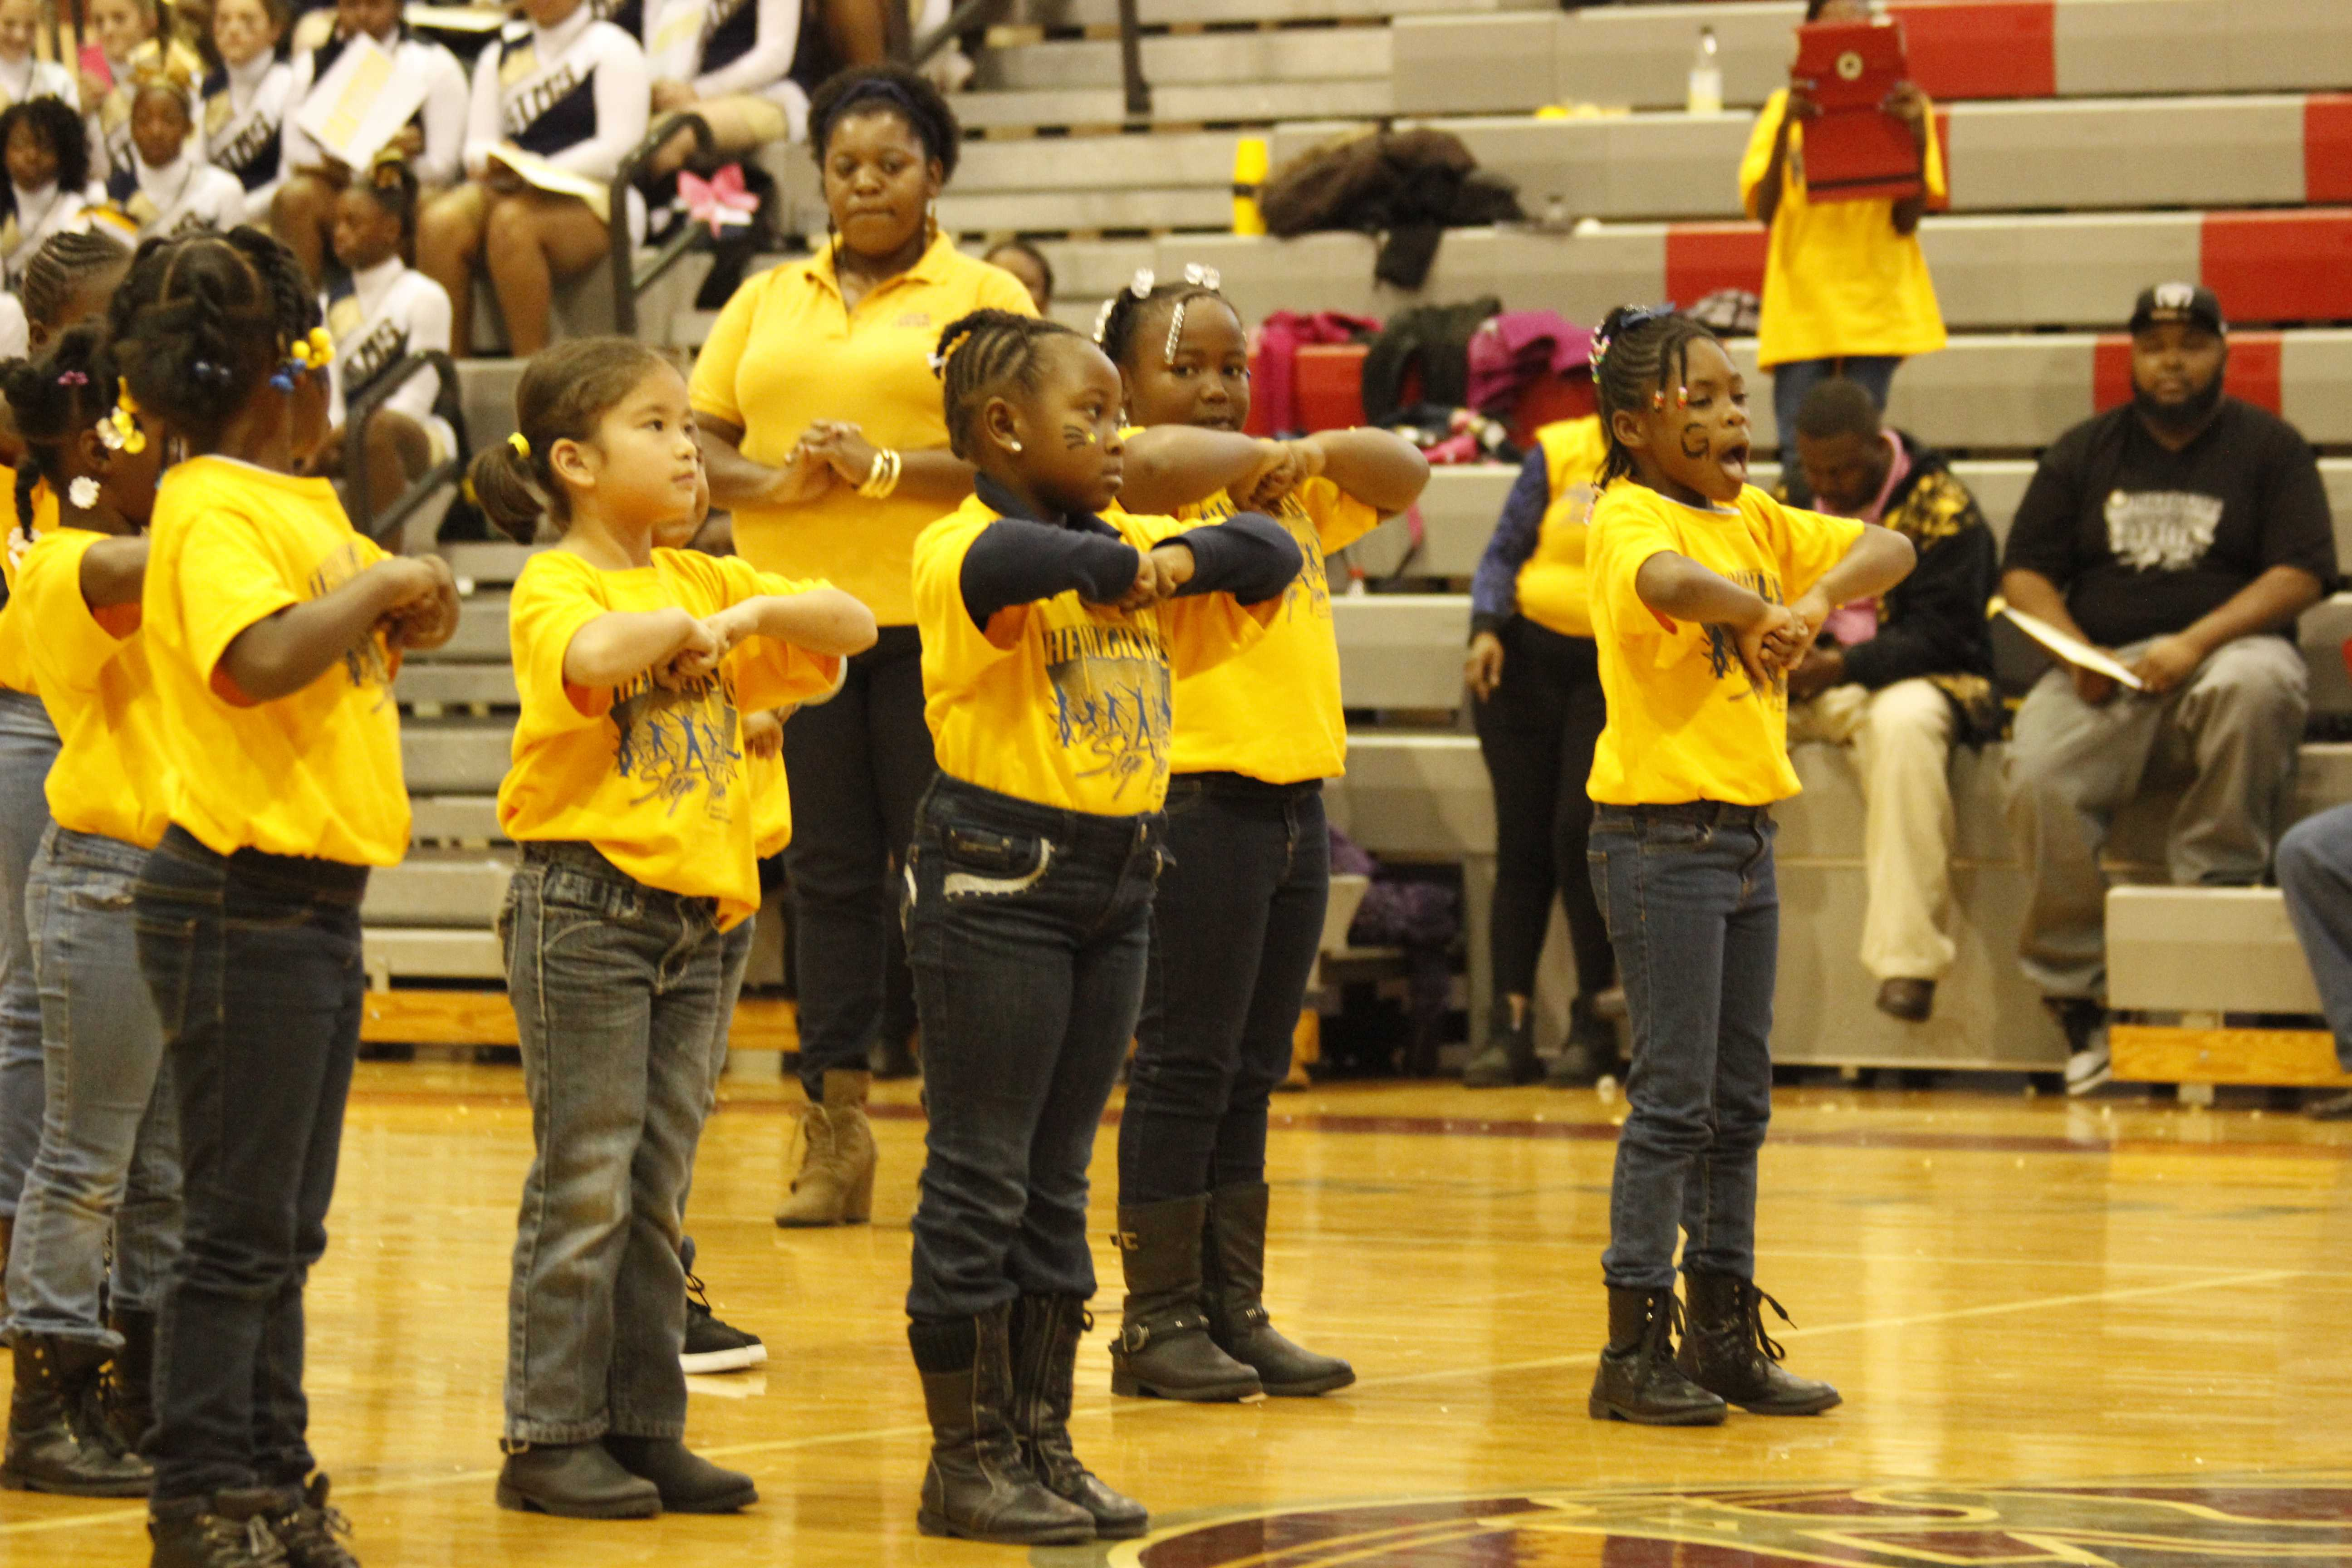 The mighty star steppers perform a dance at Cheer for Children.